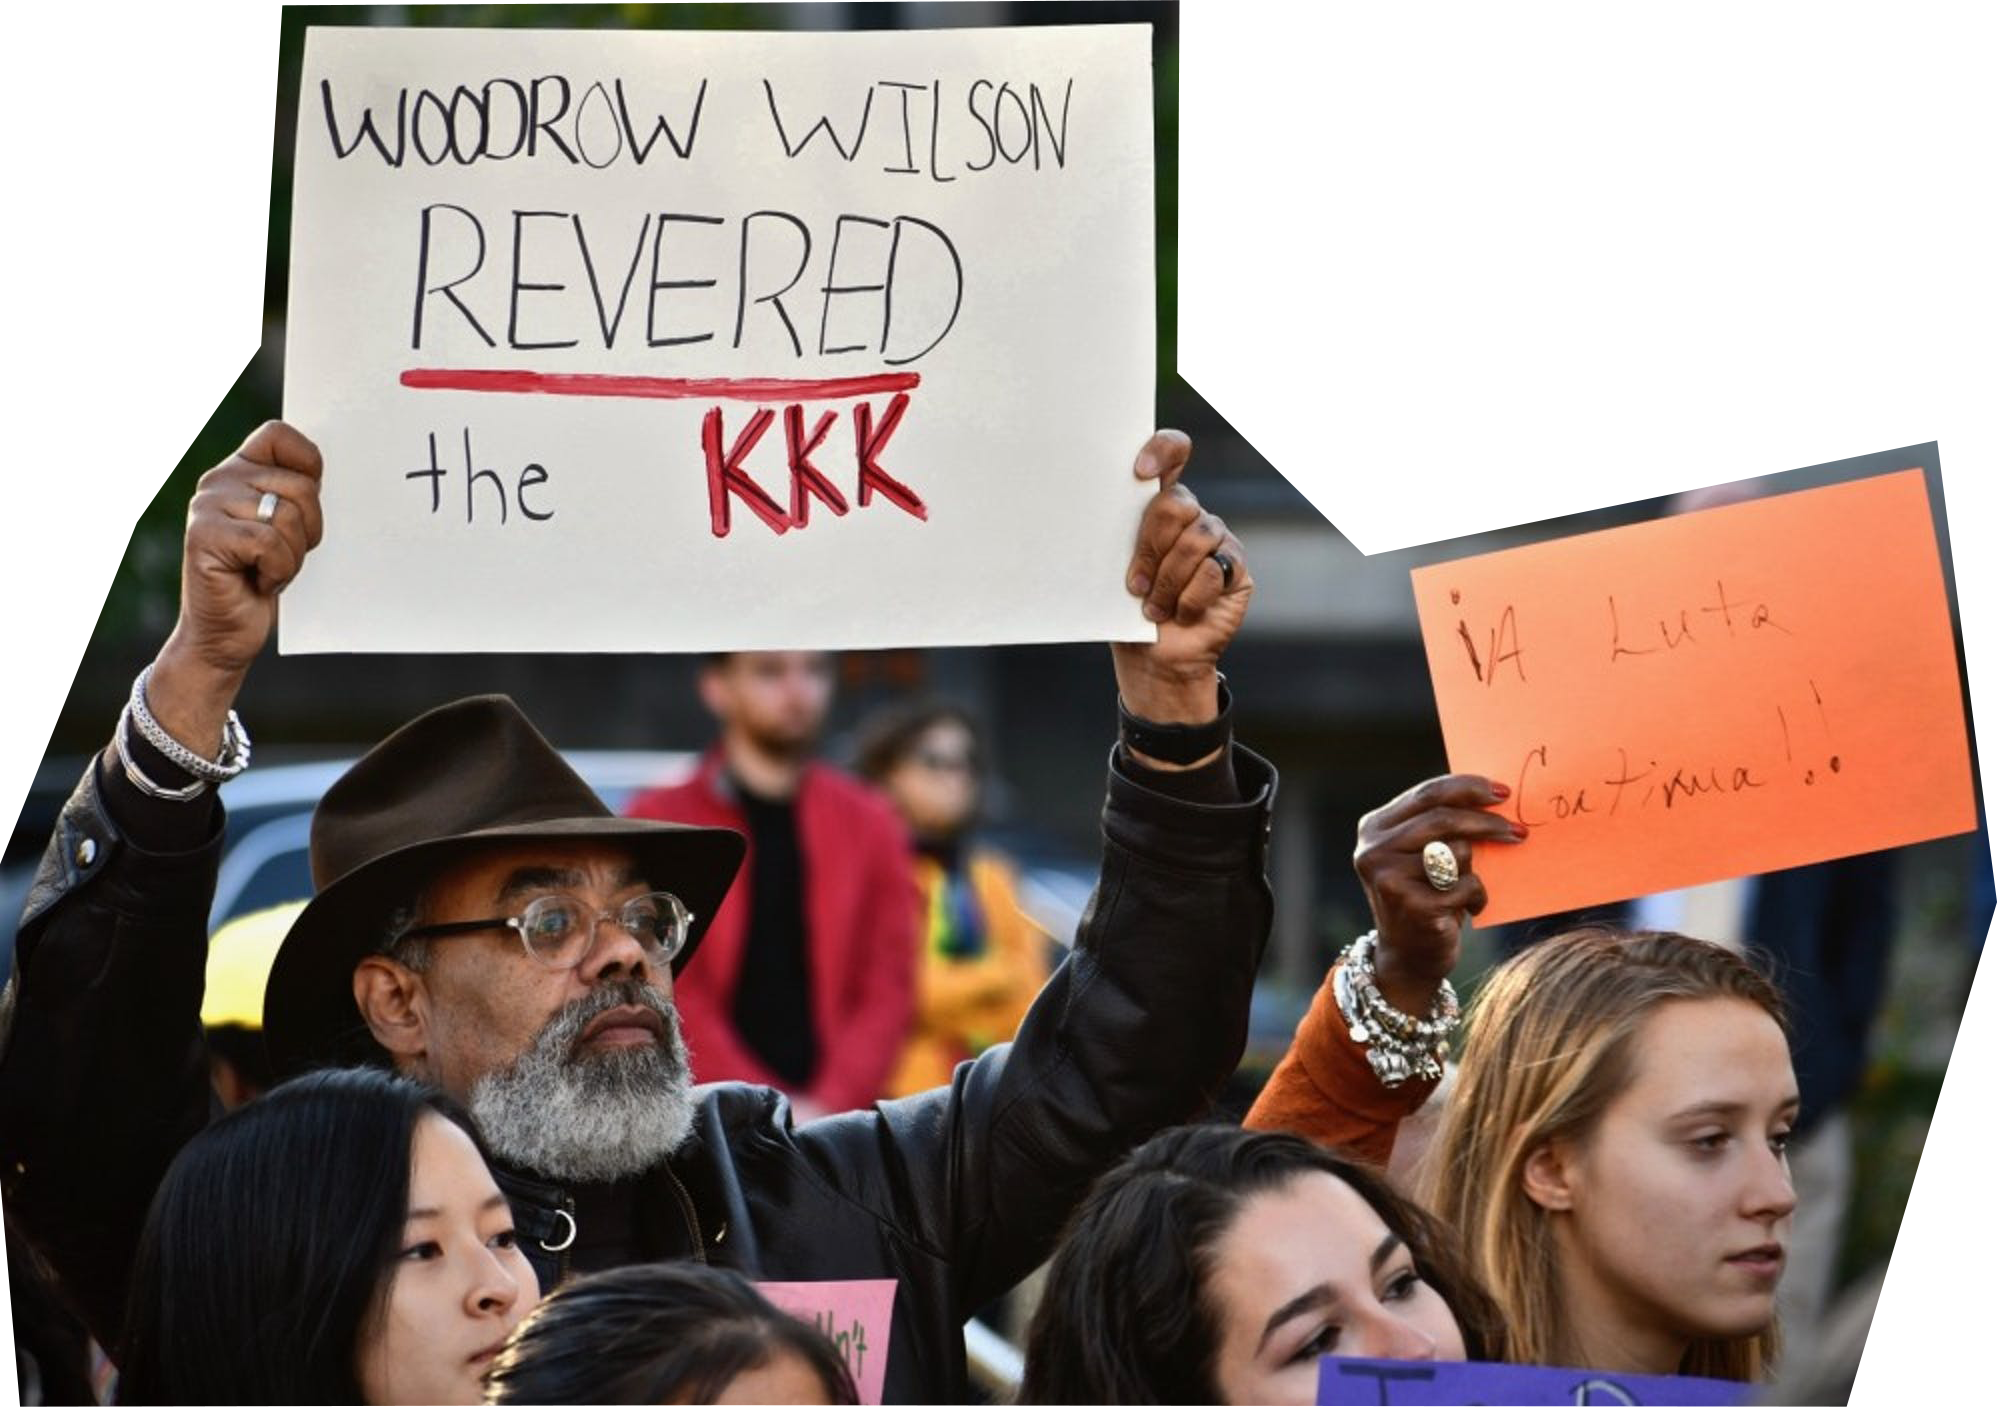 """Community members protesting an installation in front of the Woodrow Wilson School in 2019, with signs such as """"Woodrow Wilson Revered the KKK."""""""